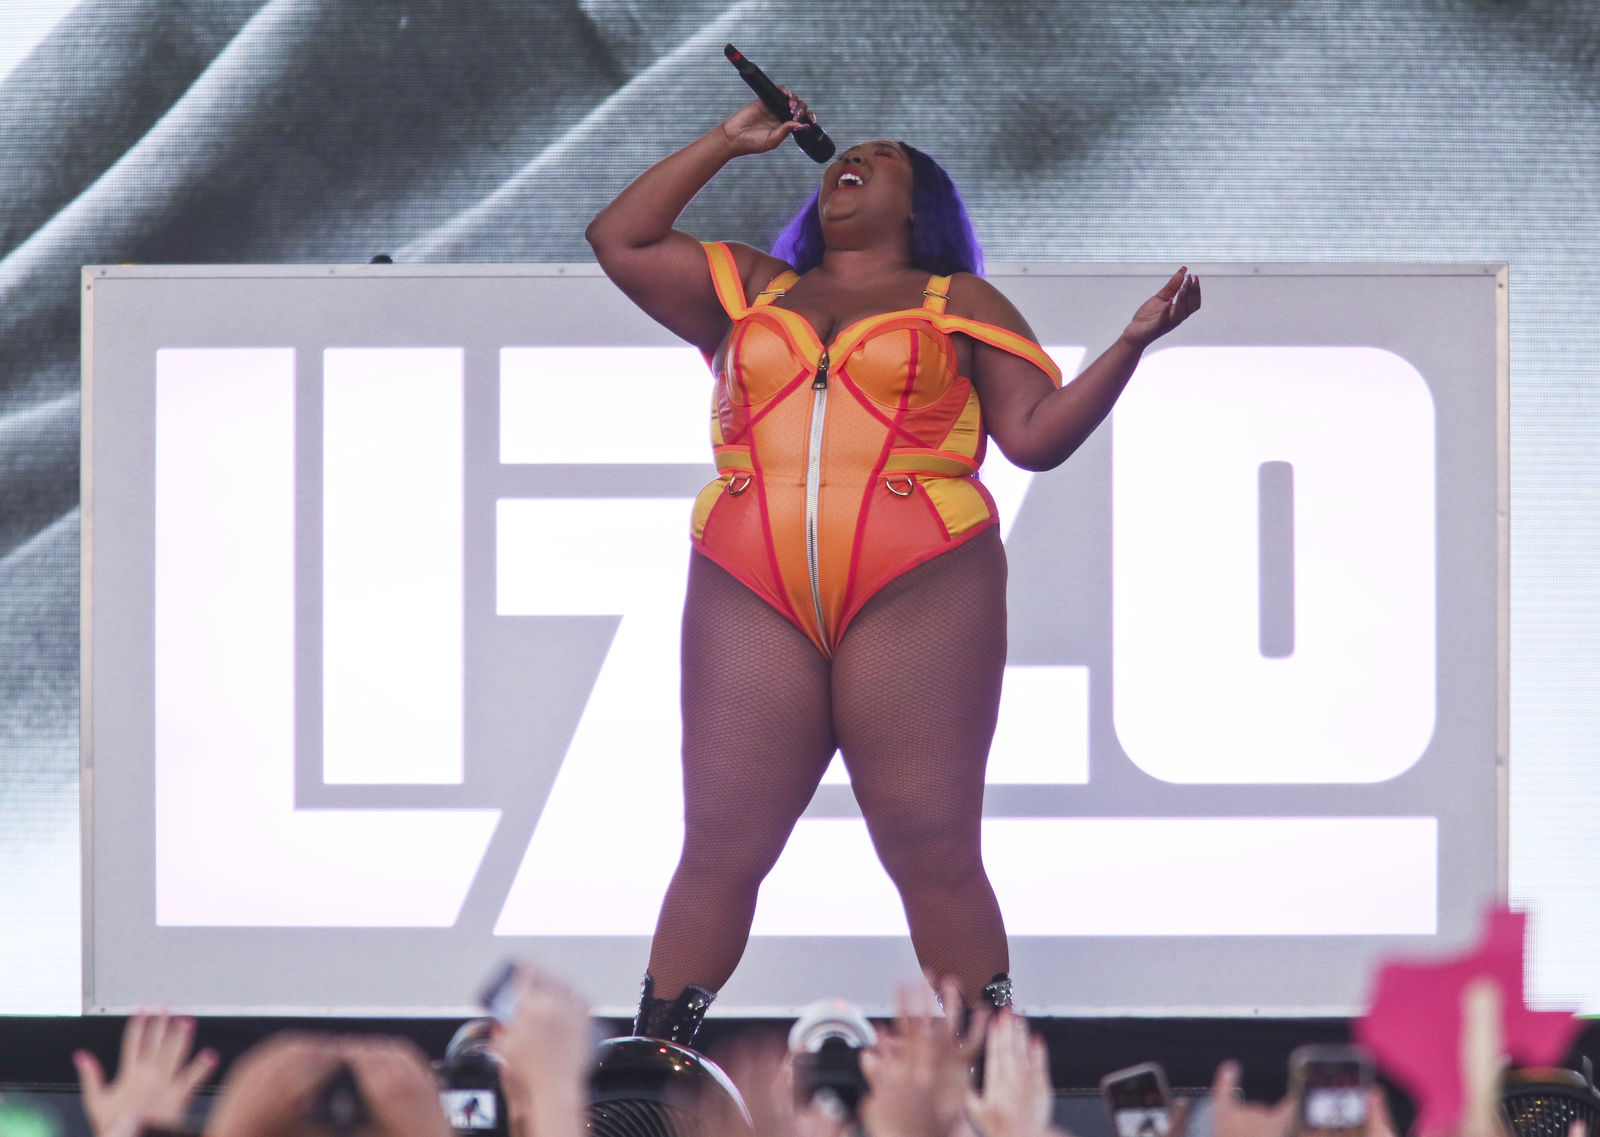 Lizzo performs during the first weekend of the Austin City Limits Music Festival in Zilker Park on Sunday, Oct. 6, 2019, in Austin, Texas. (Photo by Jack Plunkett/Invision/AP)